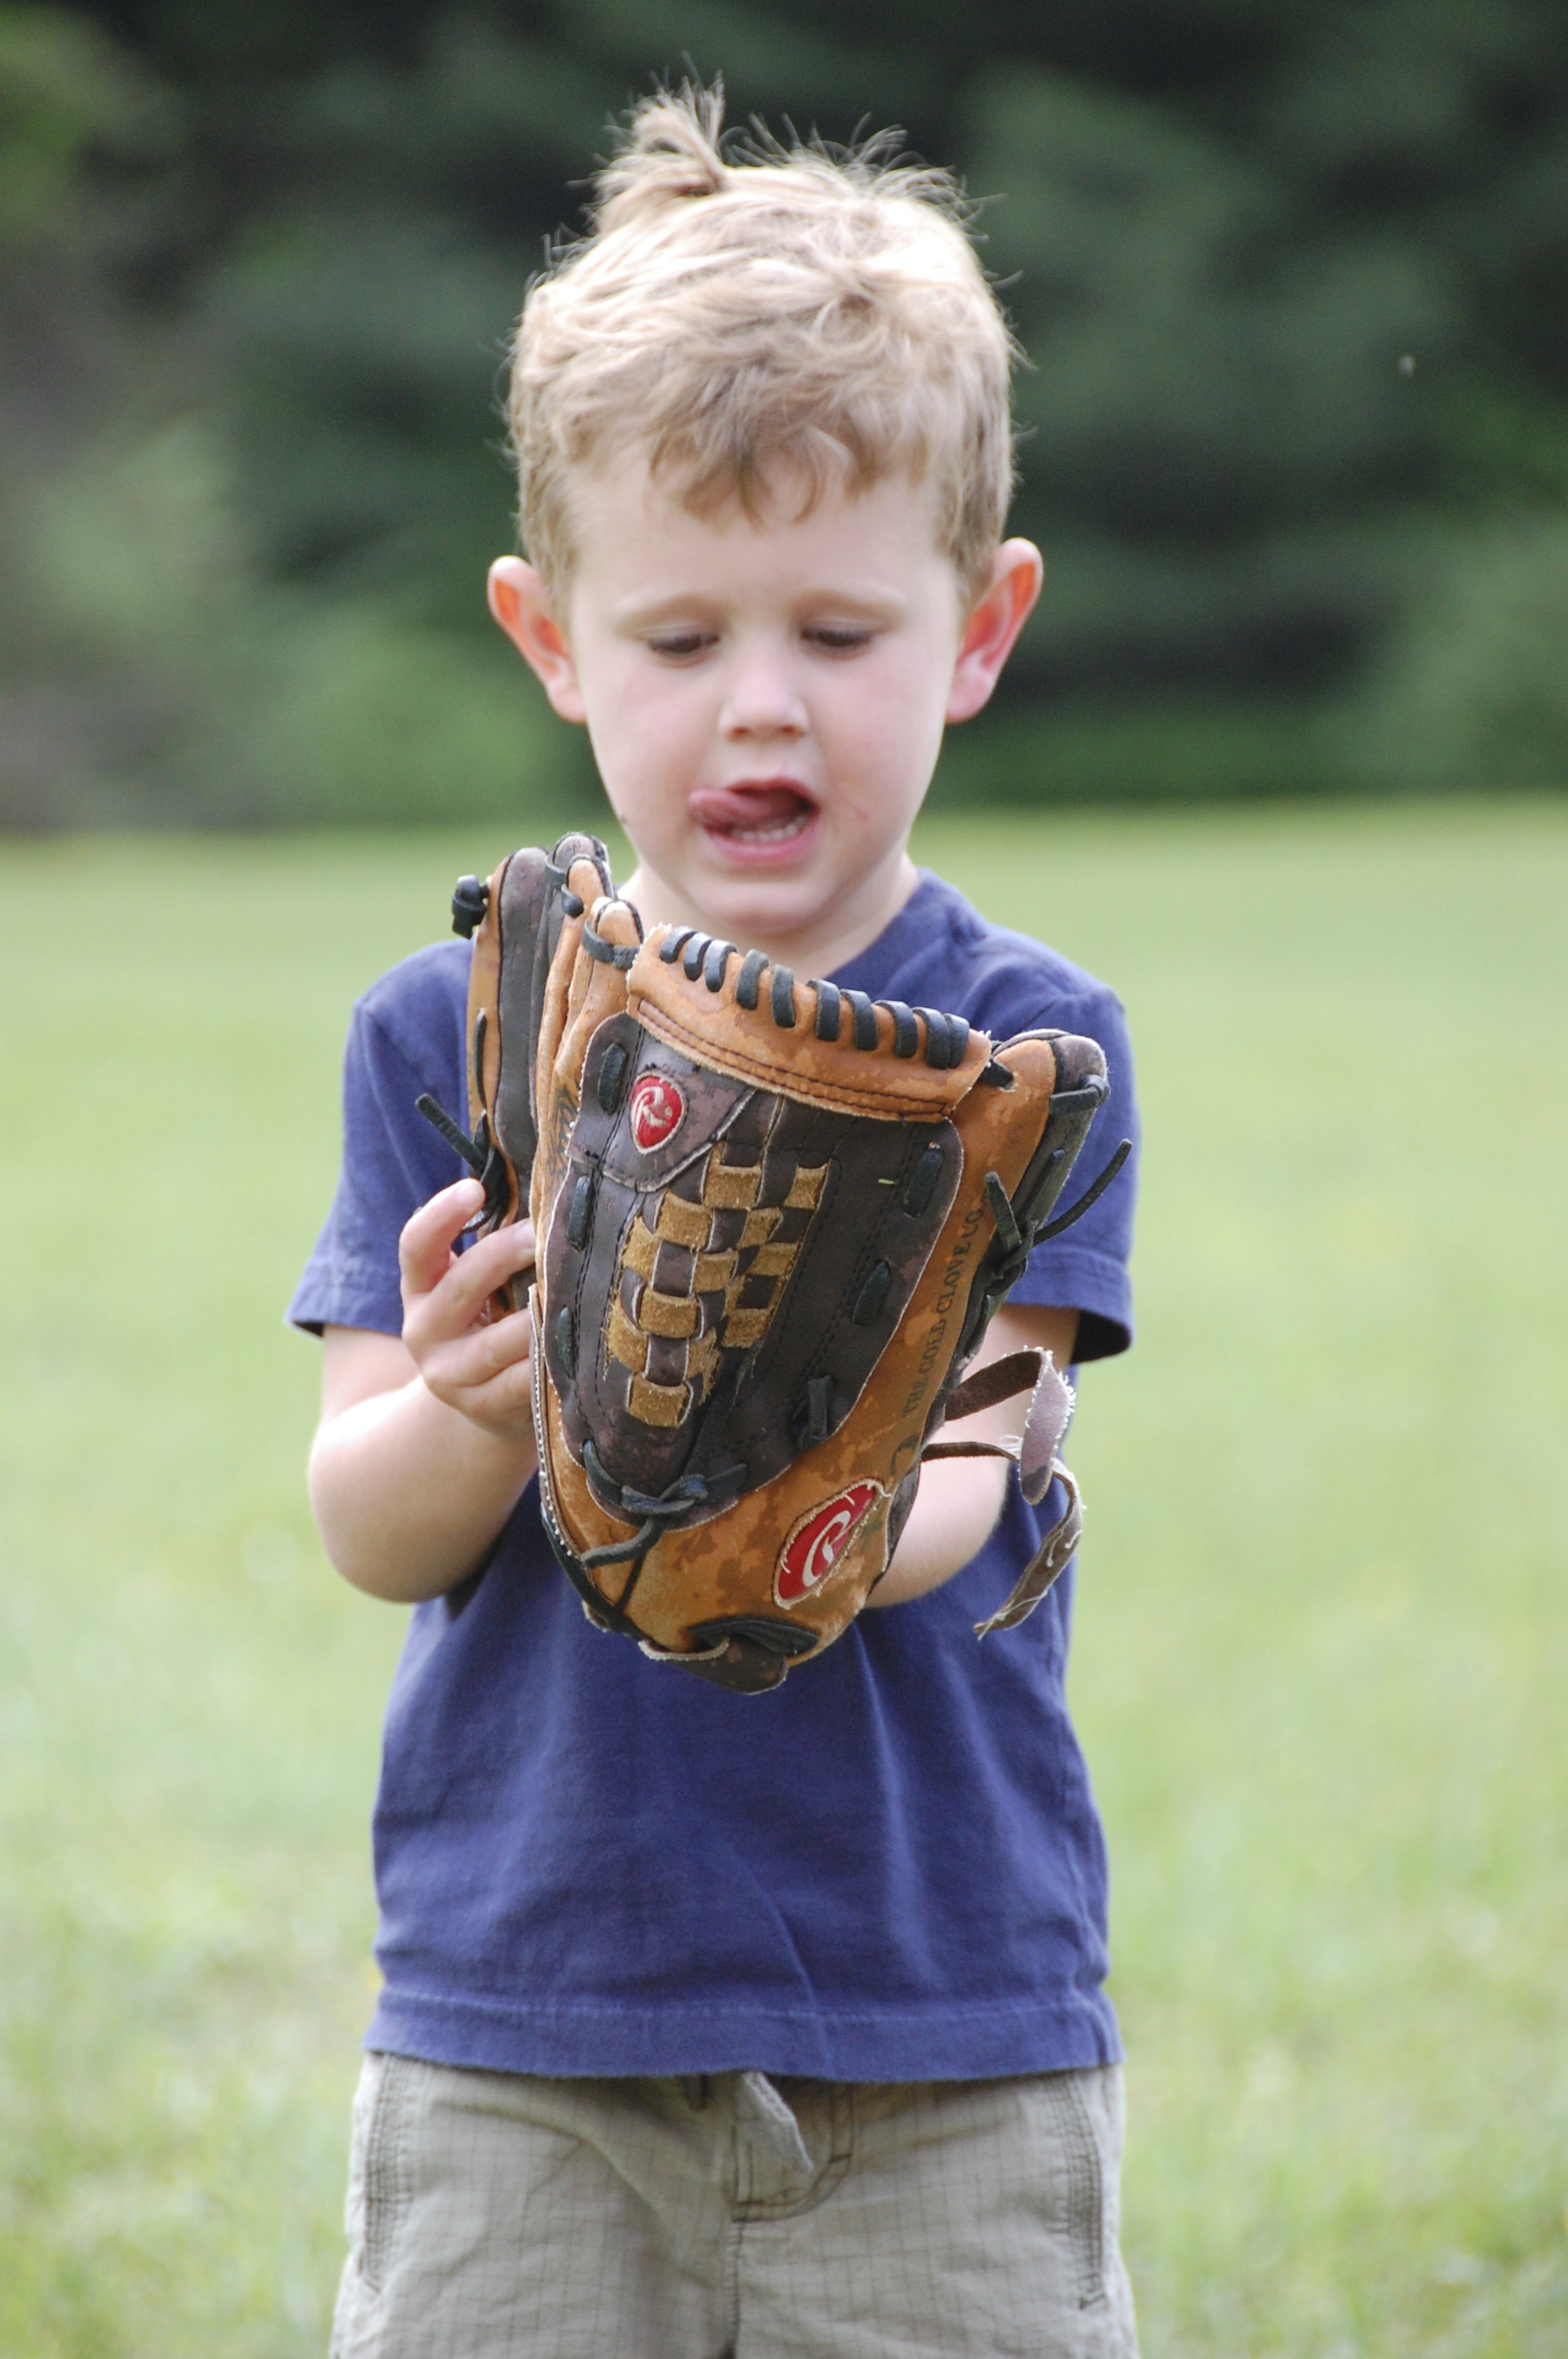 Braxton Kennedy working so hard to get that glove on! (Nick & Lindsey's oldest)